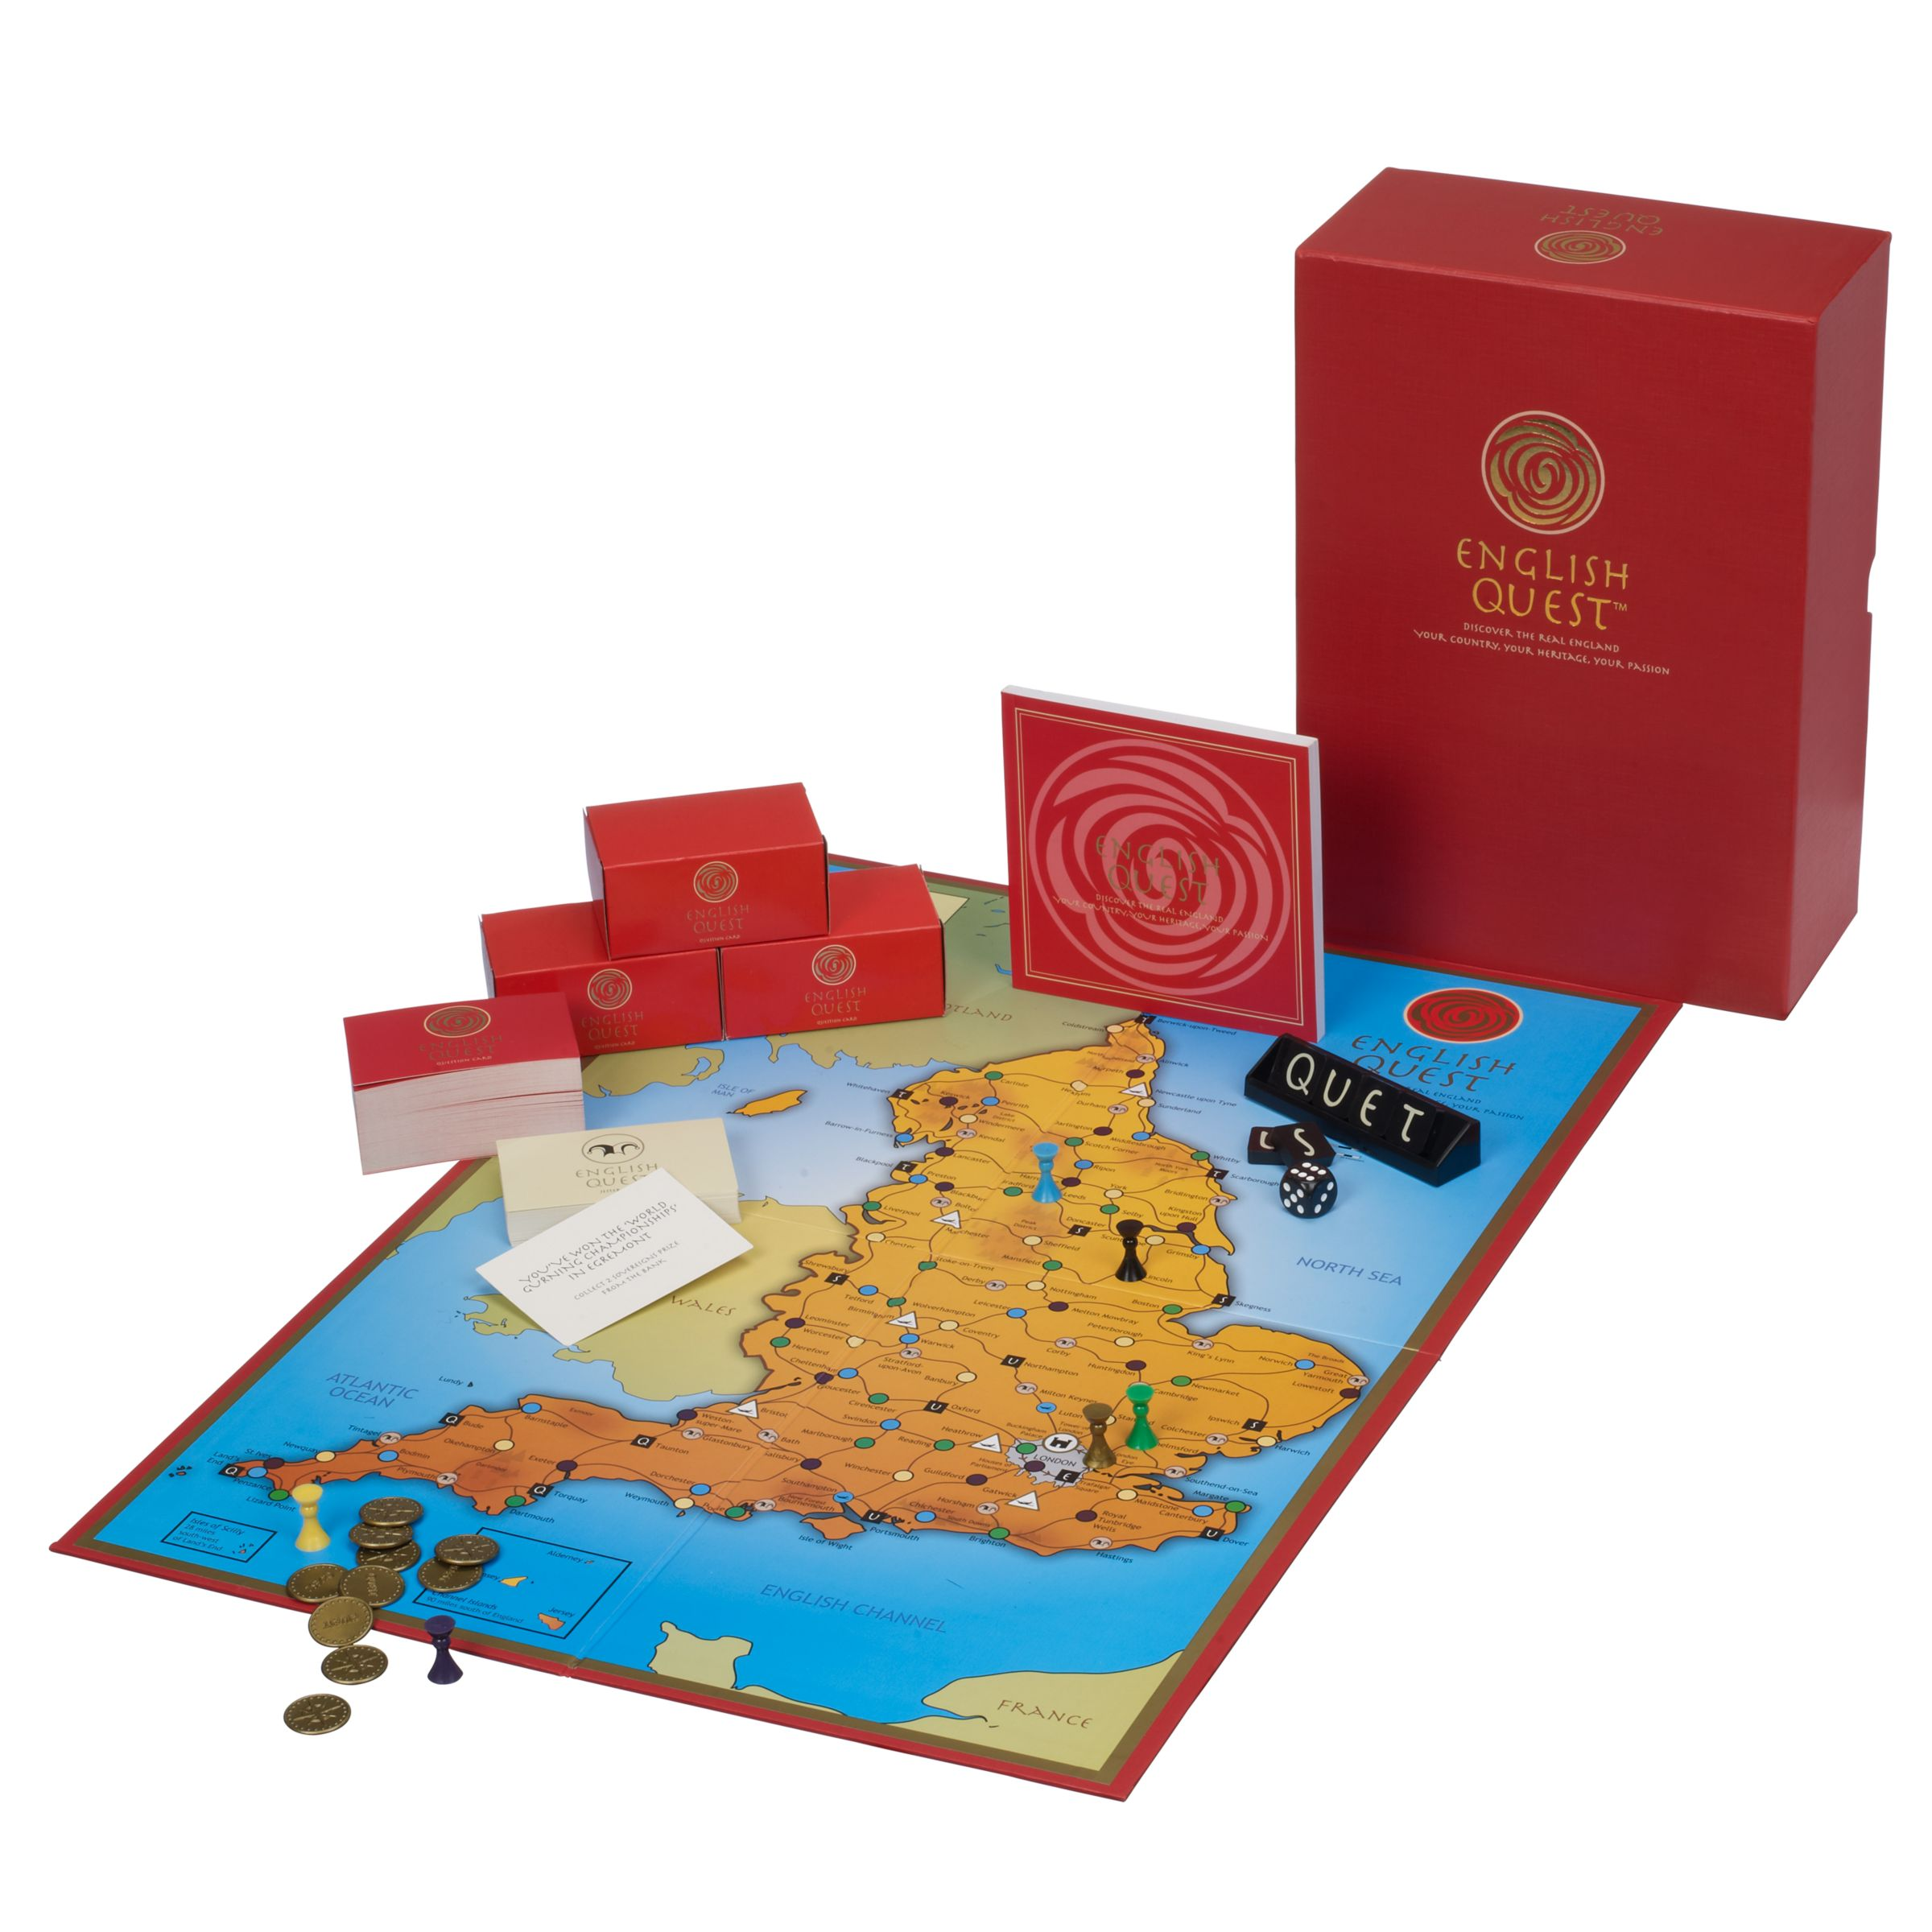 English Quest Board Game